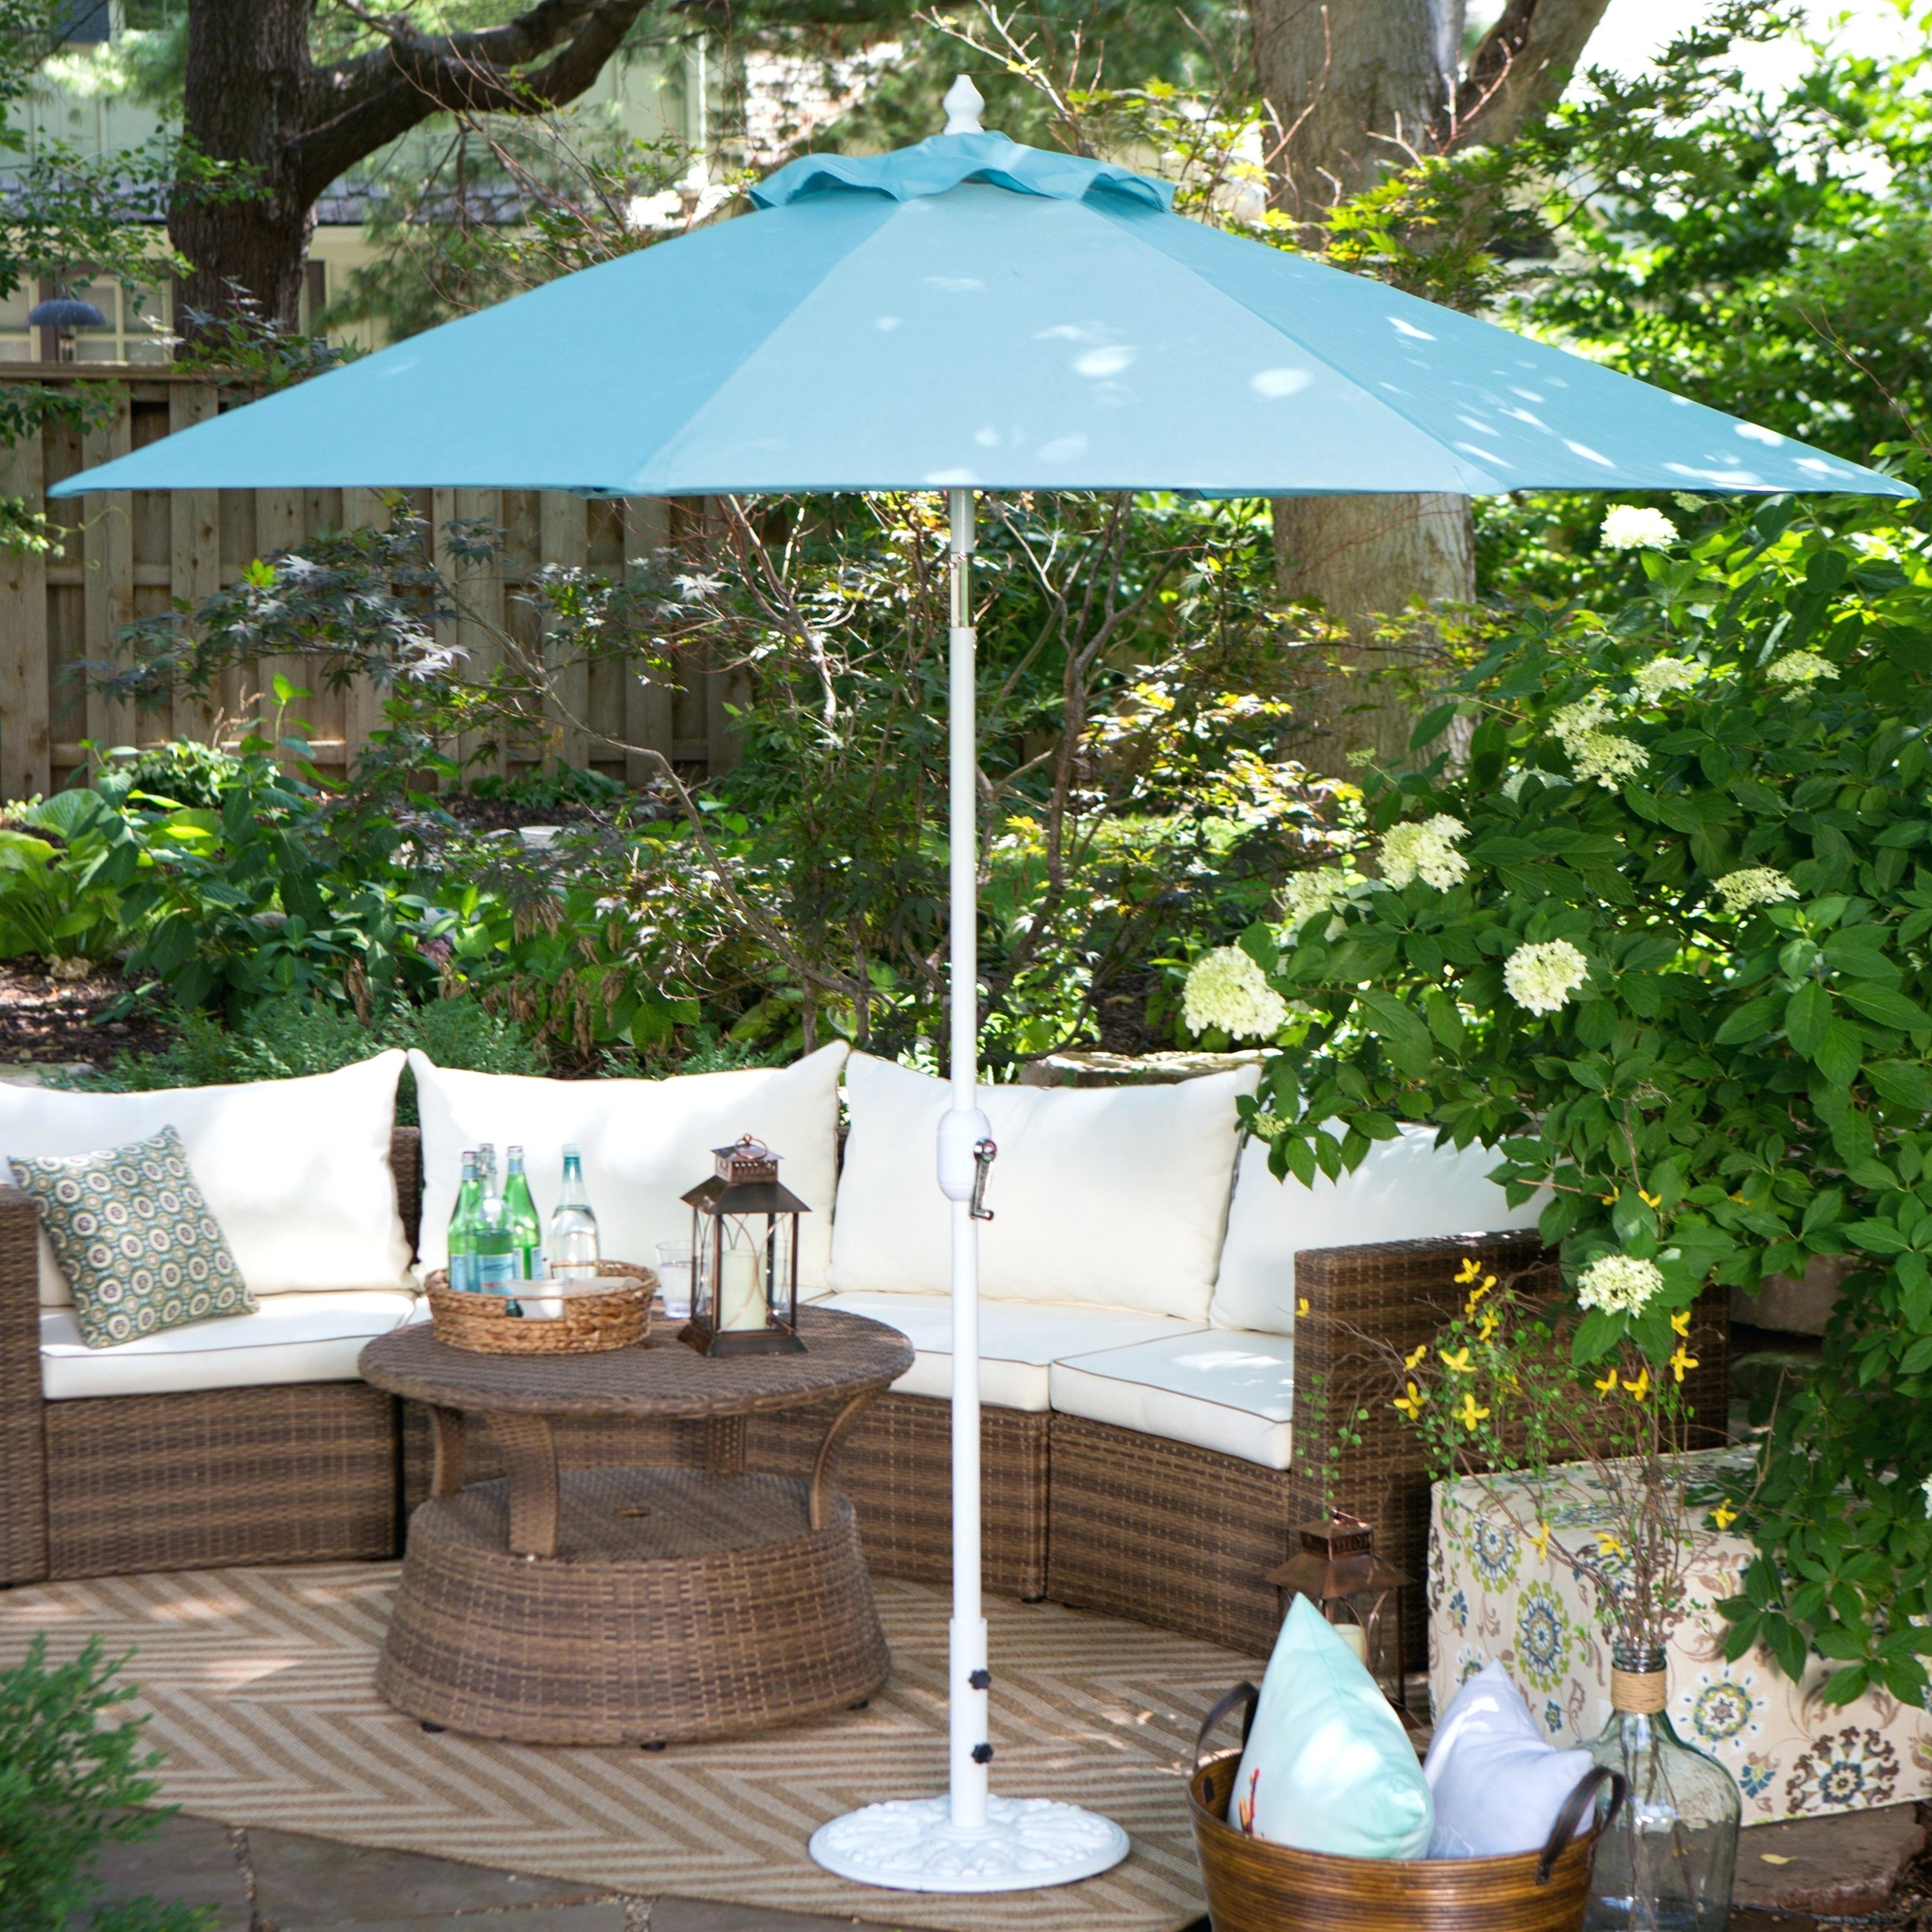 Widely Used Exotic Patio Umbrellas Pertaining To Sunbrella Patio Umbrellas – Kemvaleo (View 20 of 20)